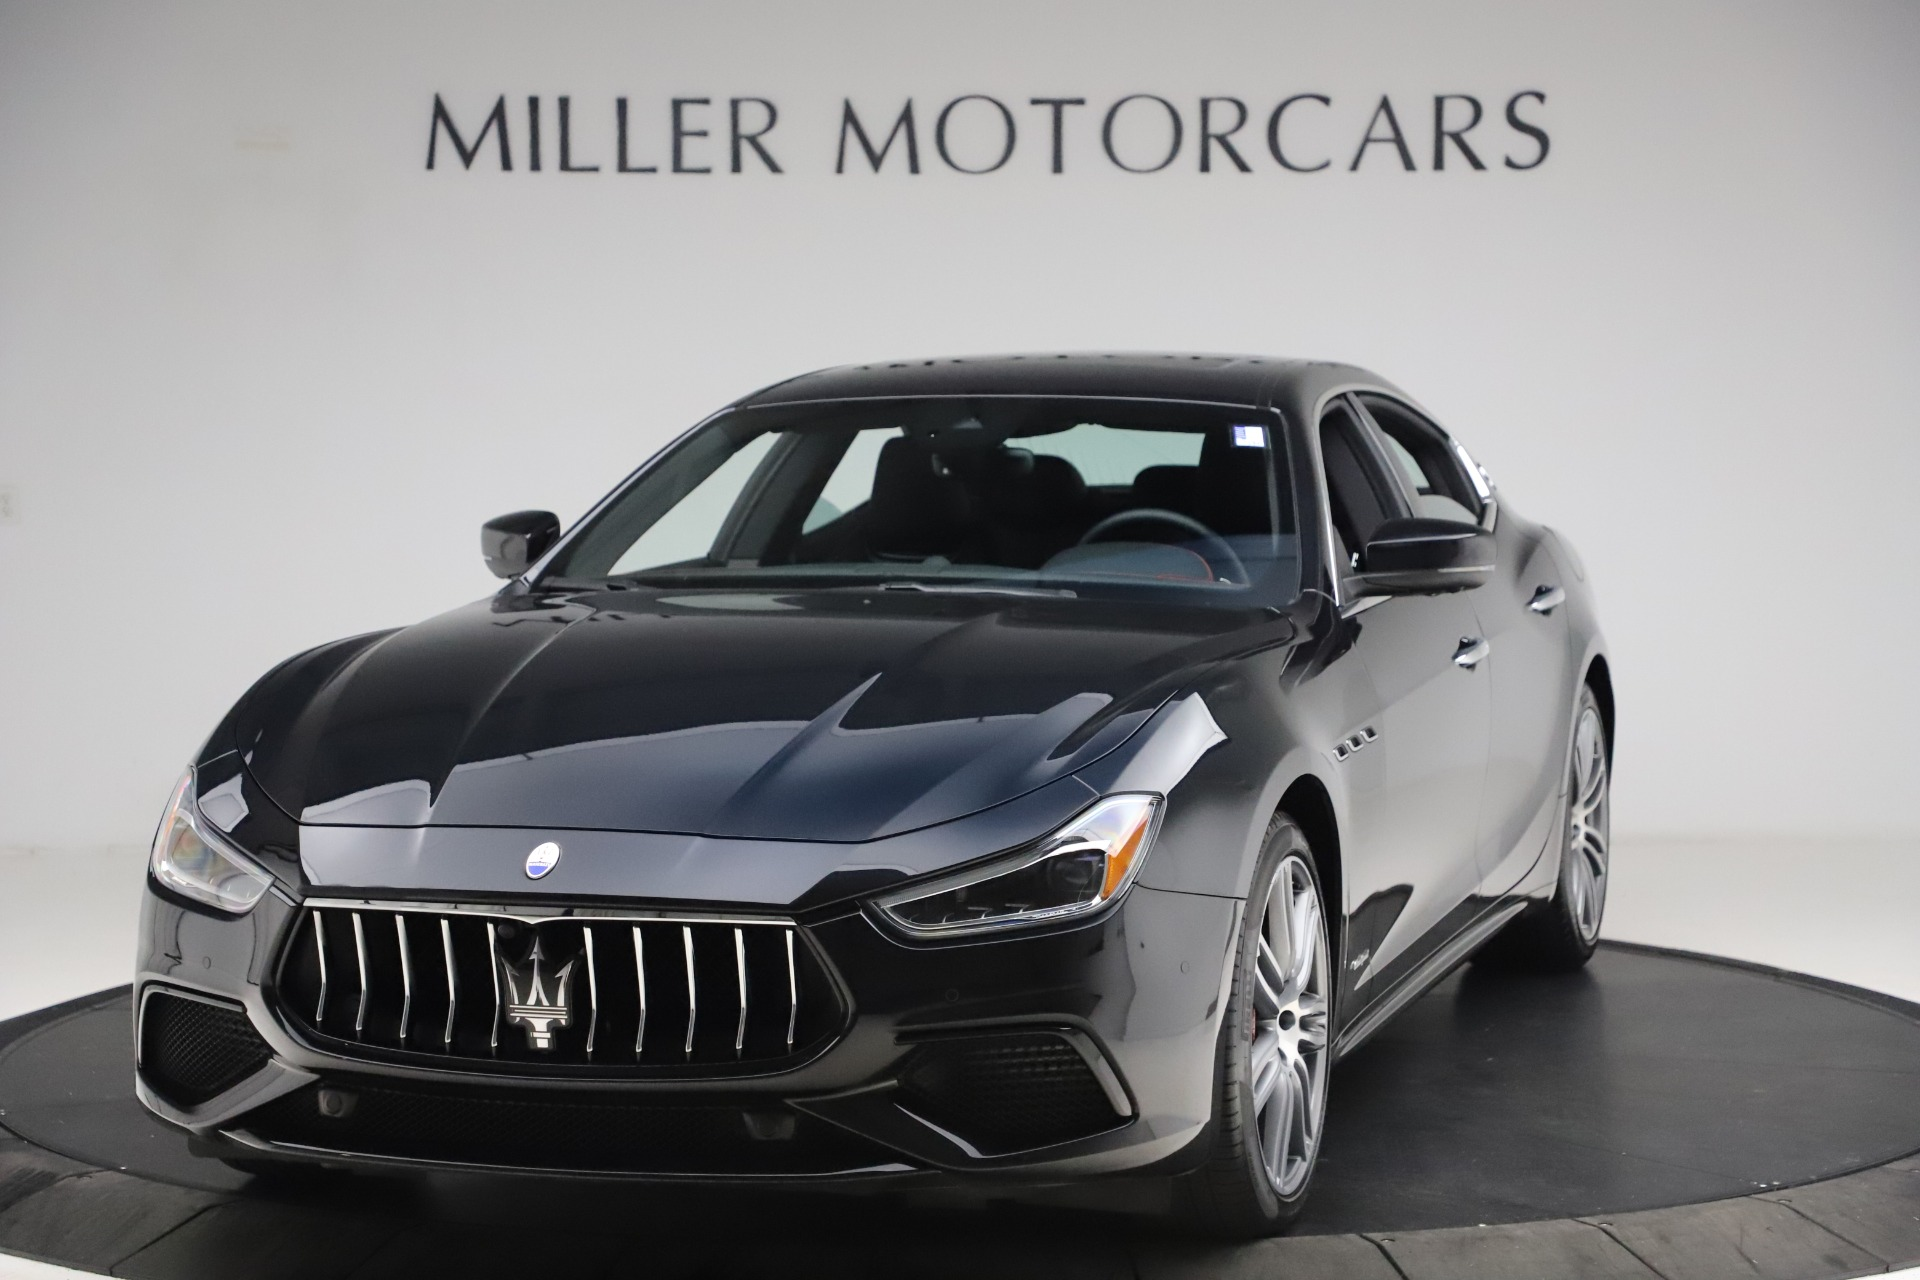 New 2020 Maserati Ghibli S Q4 GranSport for sale $70,331 at Bentley Greenwich in Greenwich CT 06830 1